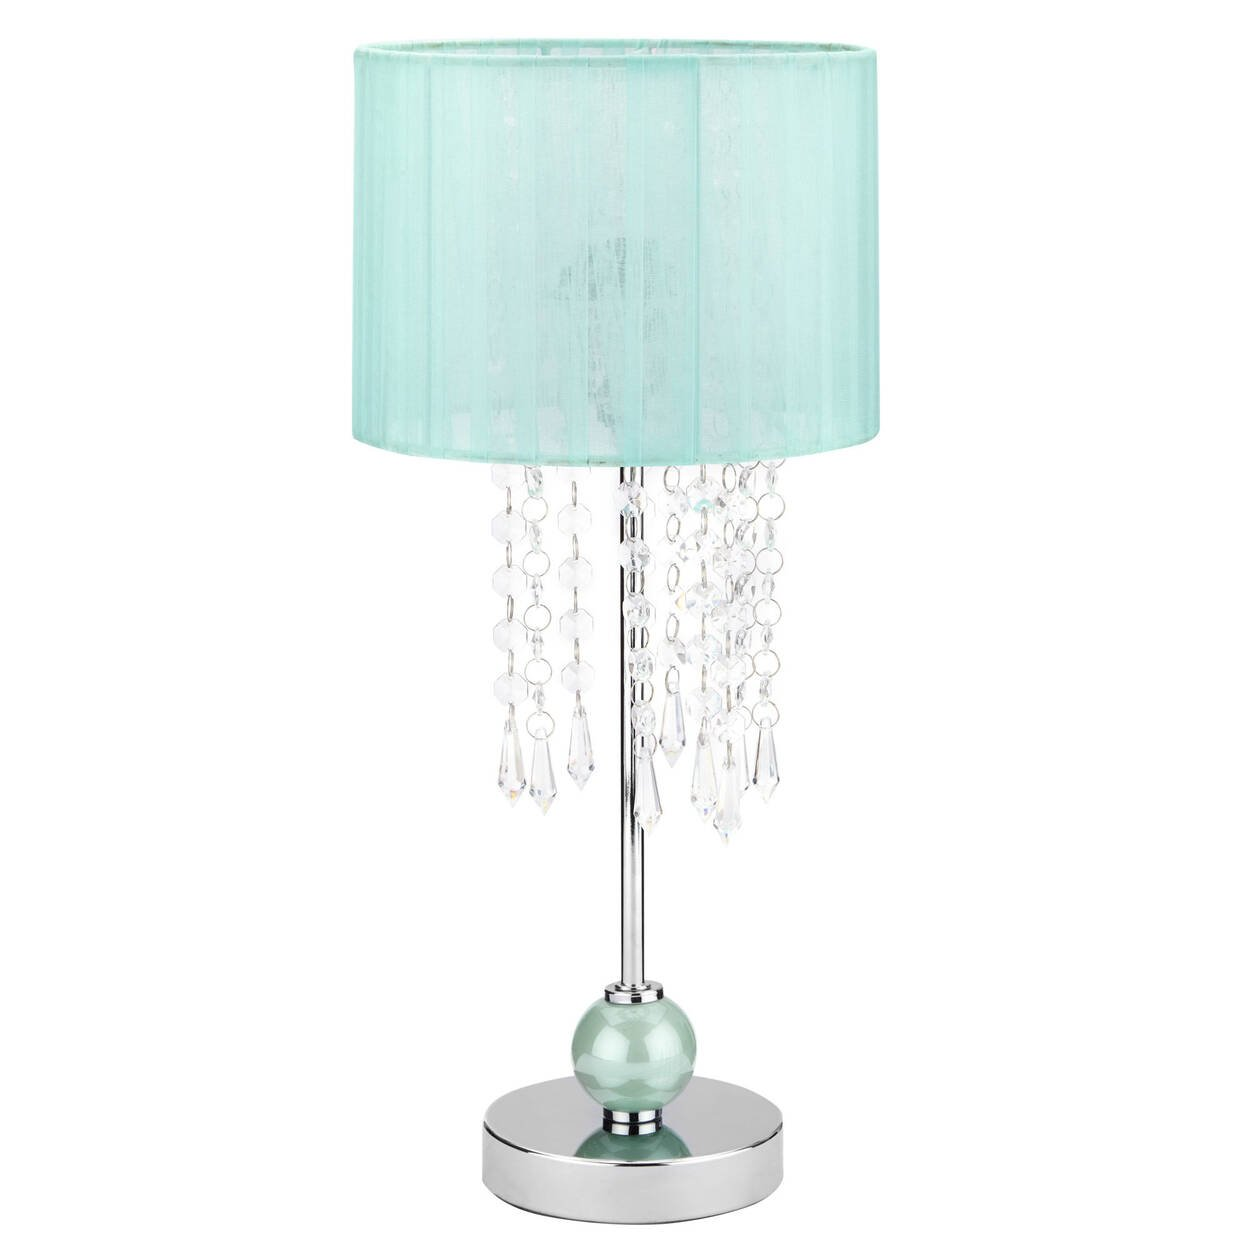 Ribbon & Droplets Table Lamp